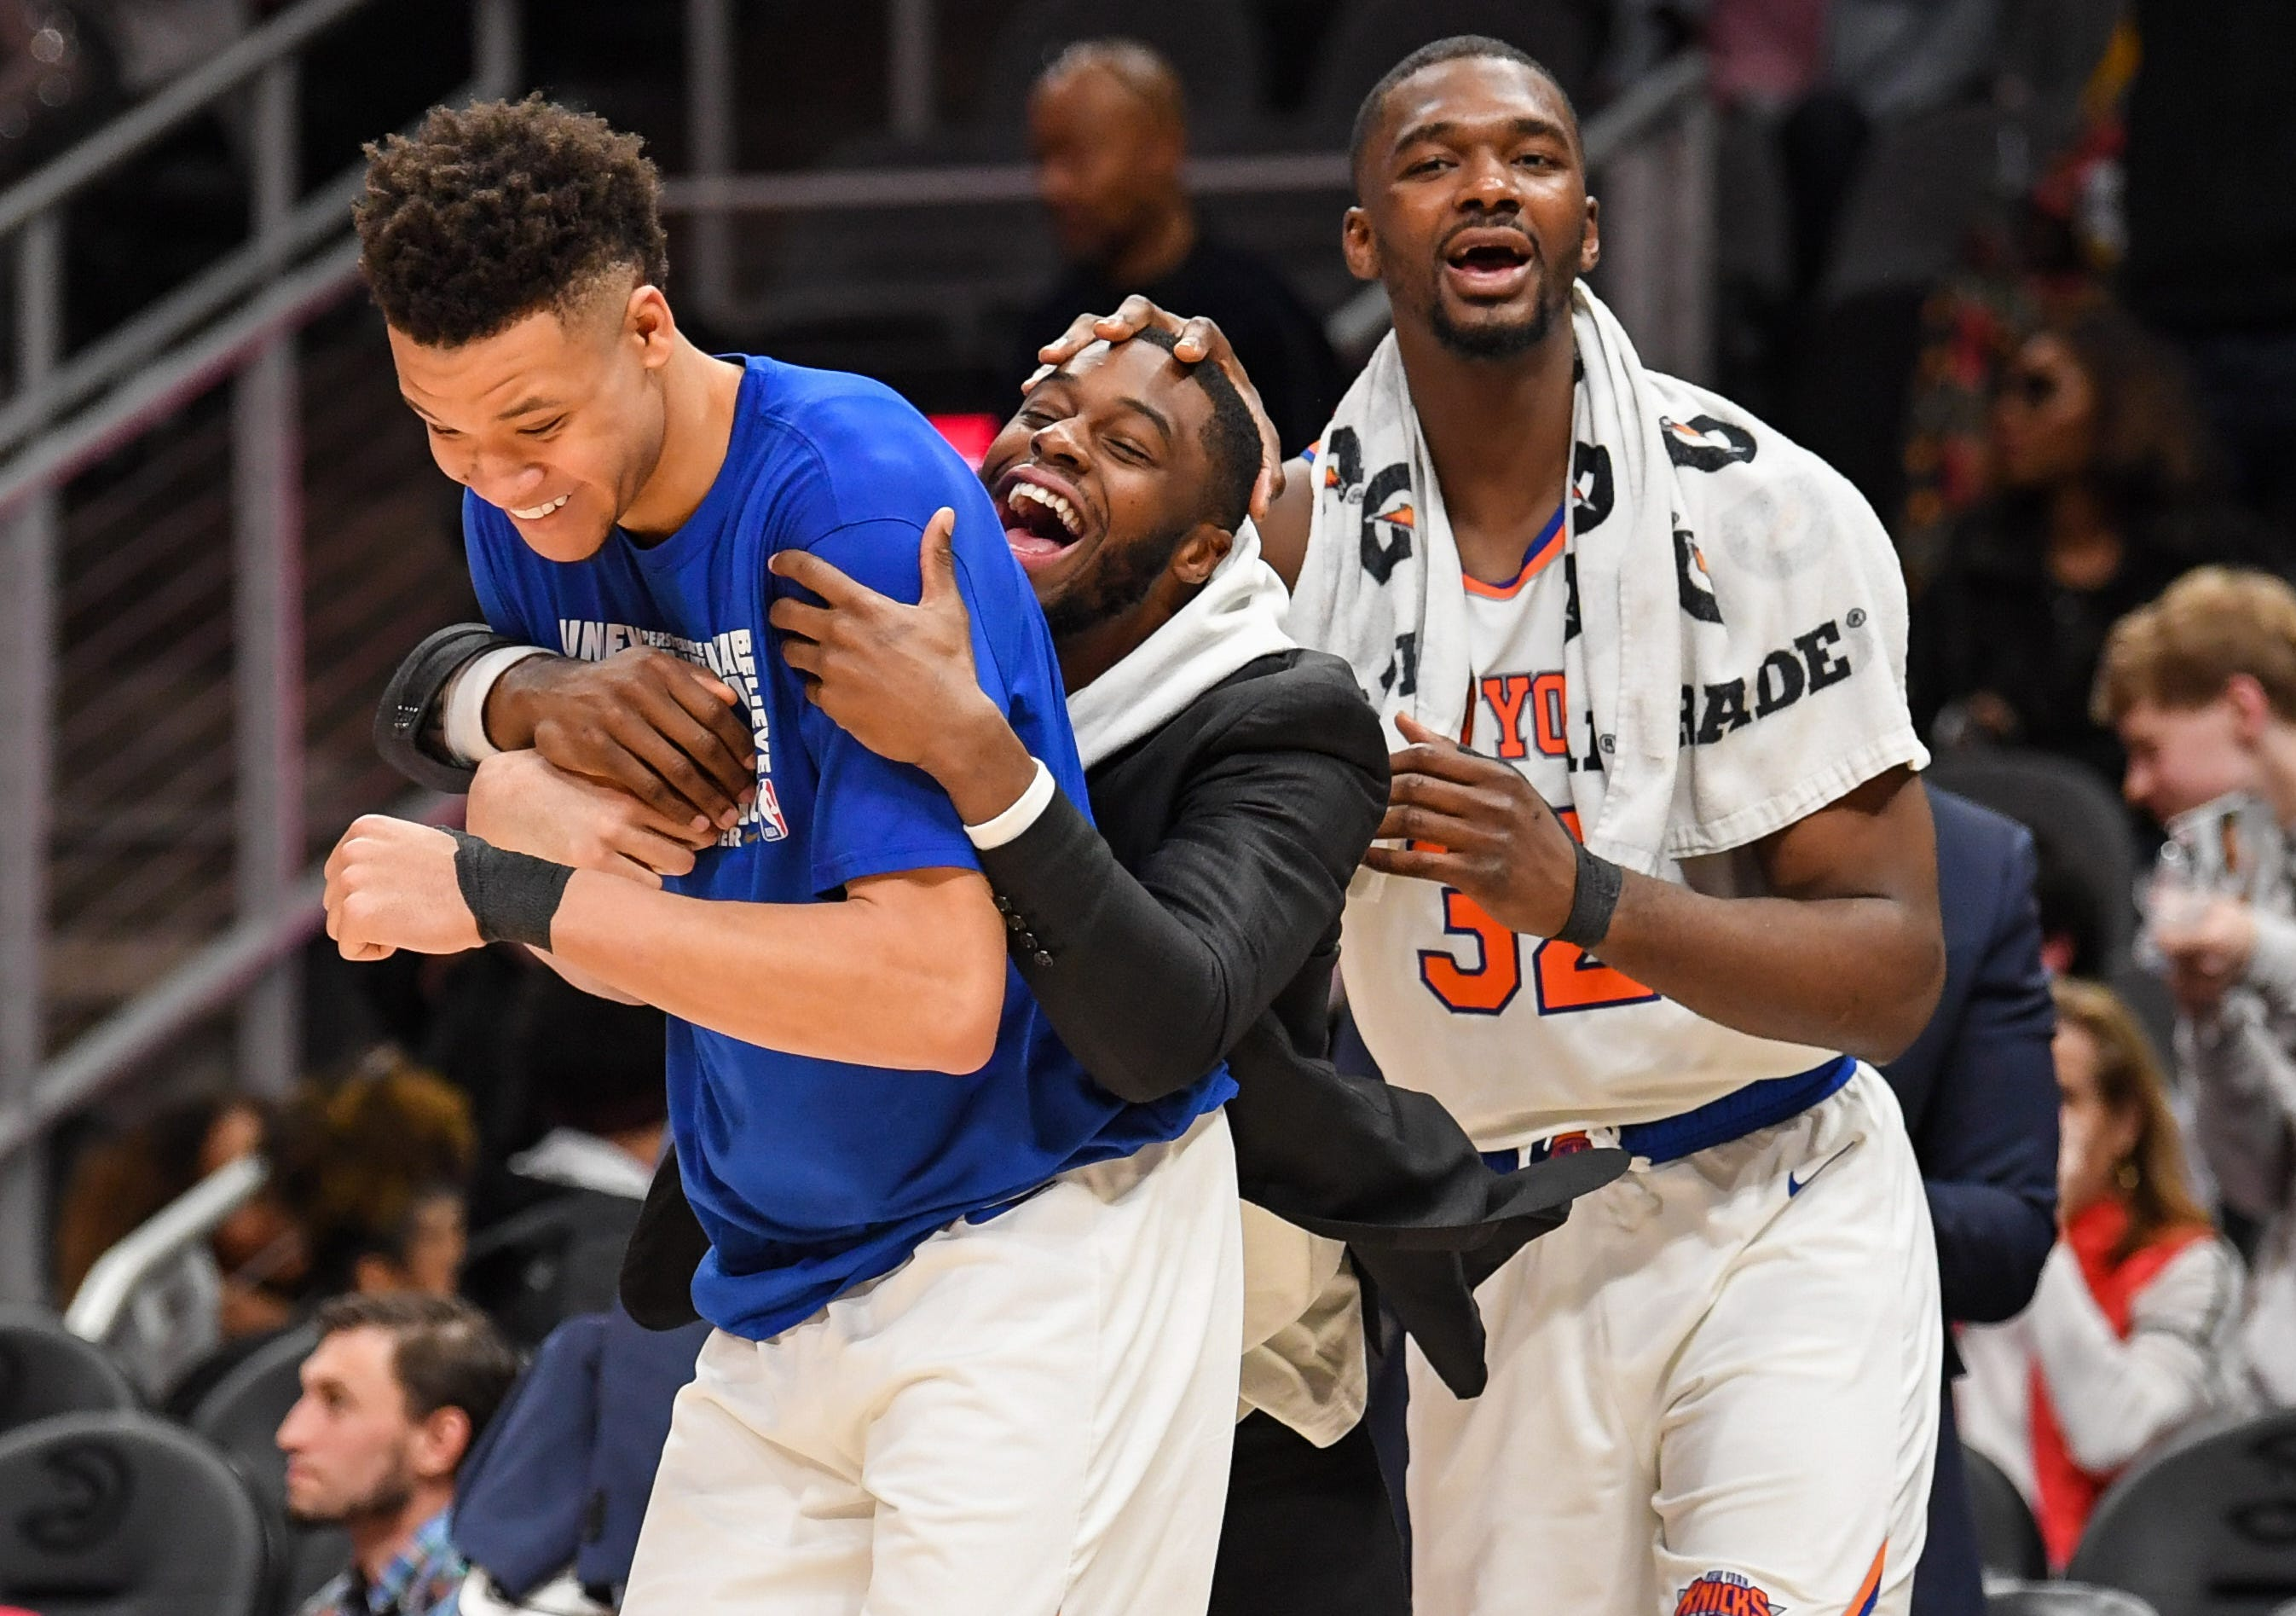 Feb. 14: The Knicks celebrate after beating the Hawks to snap an 18-game losing streak, the longest single-season slide in team history.